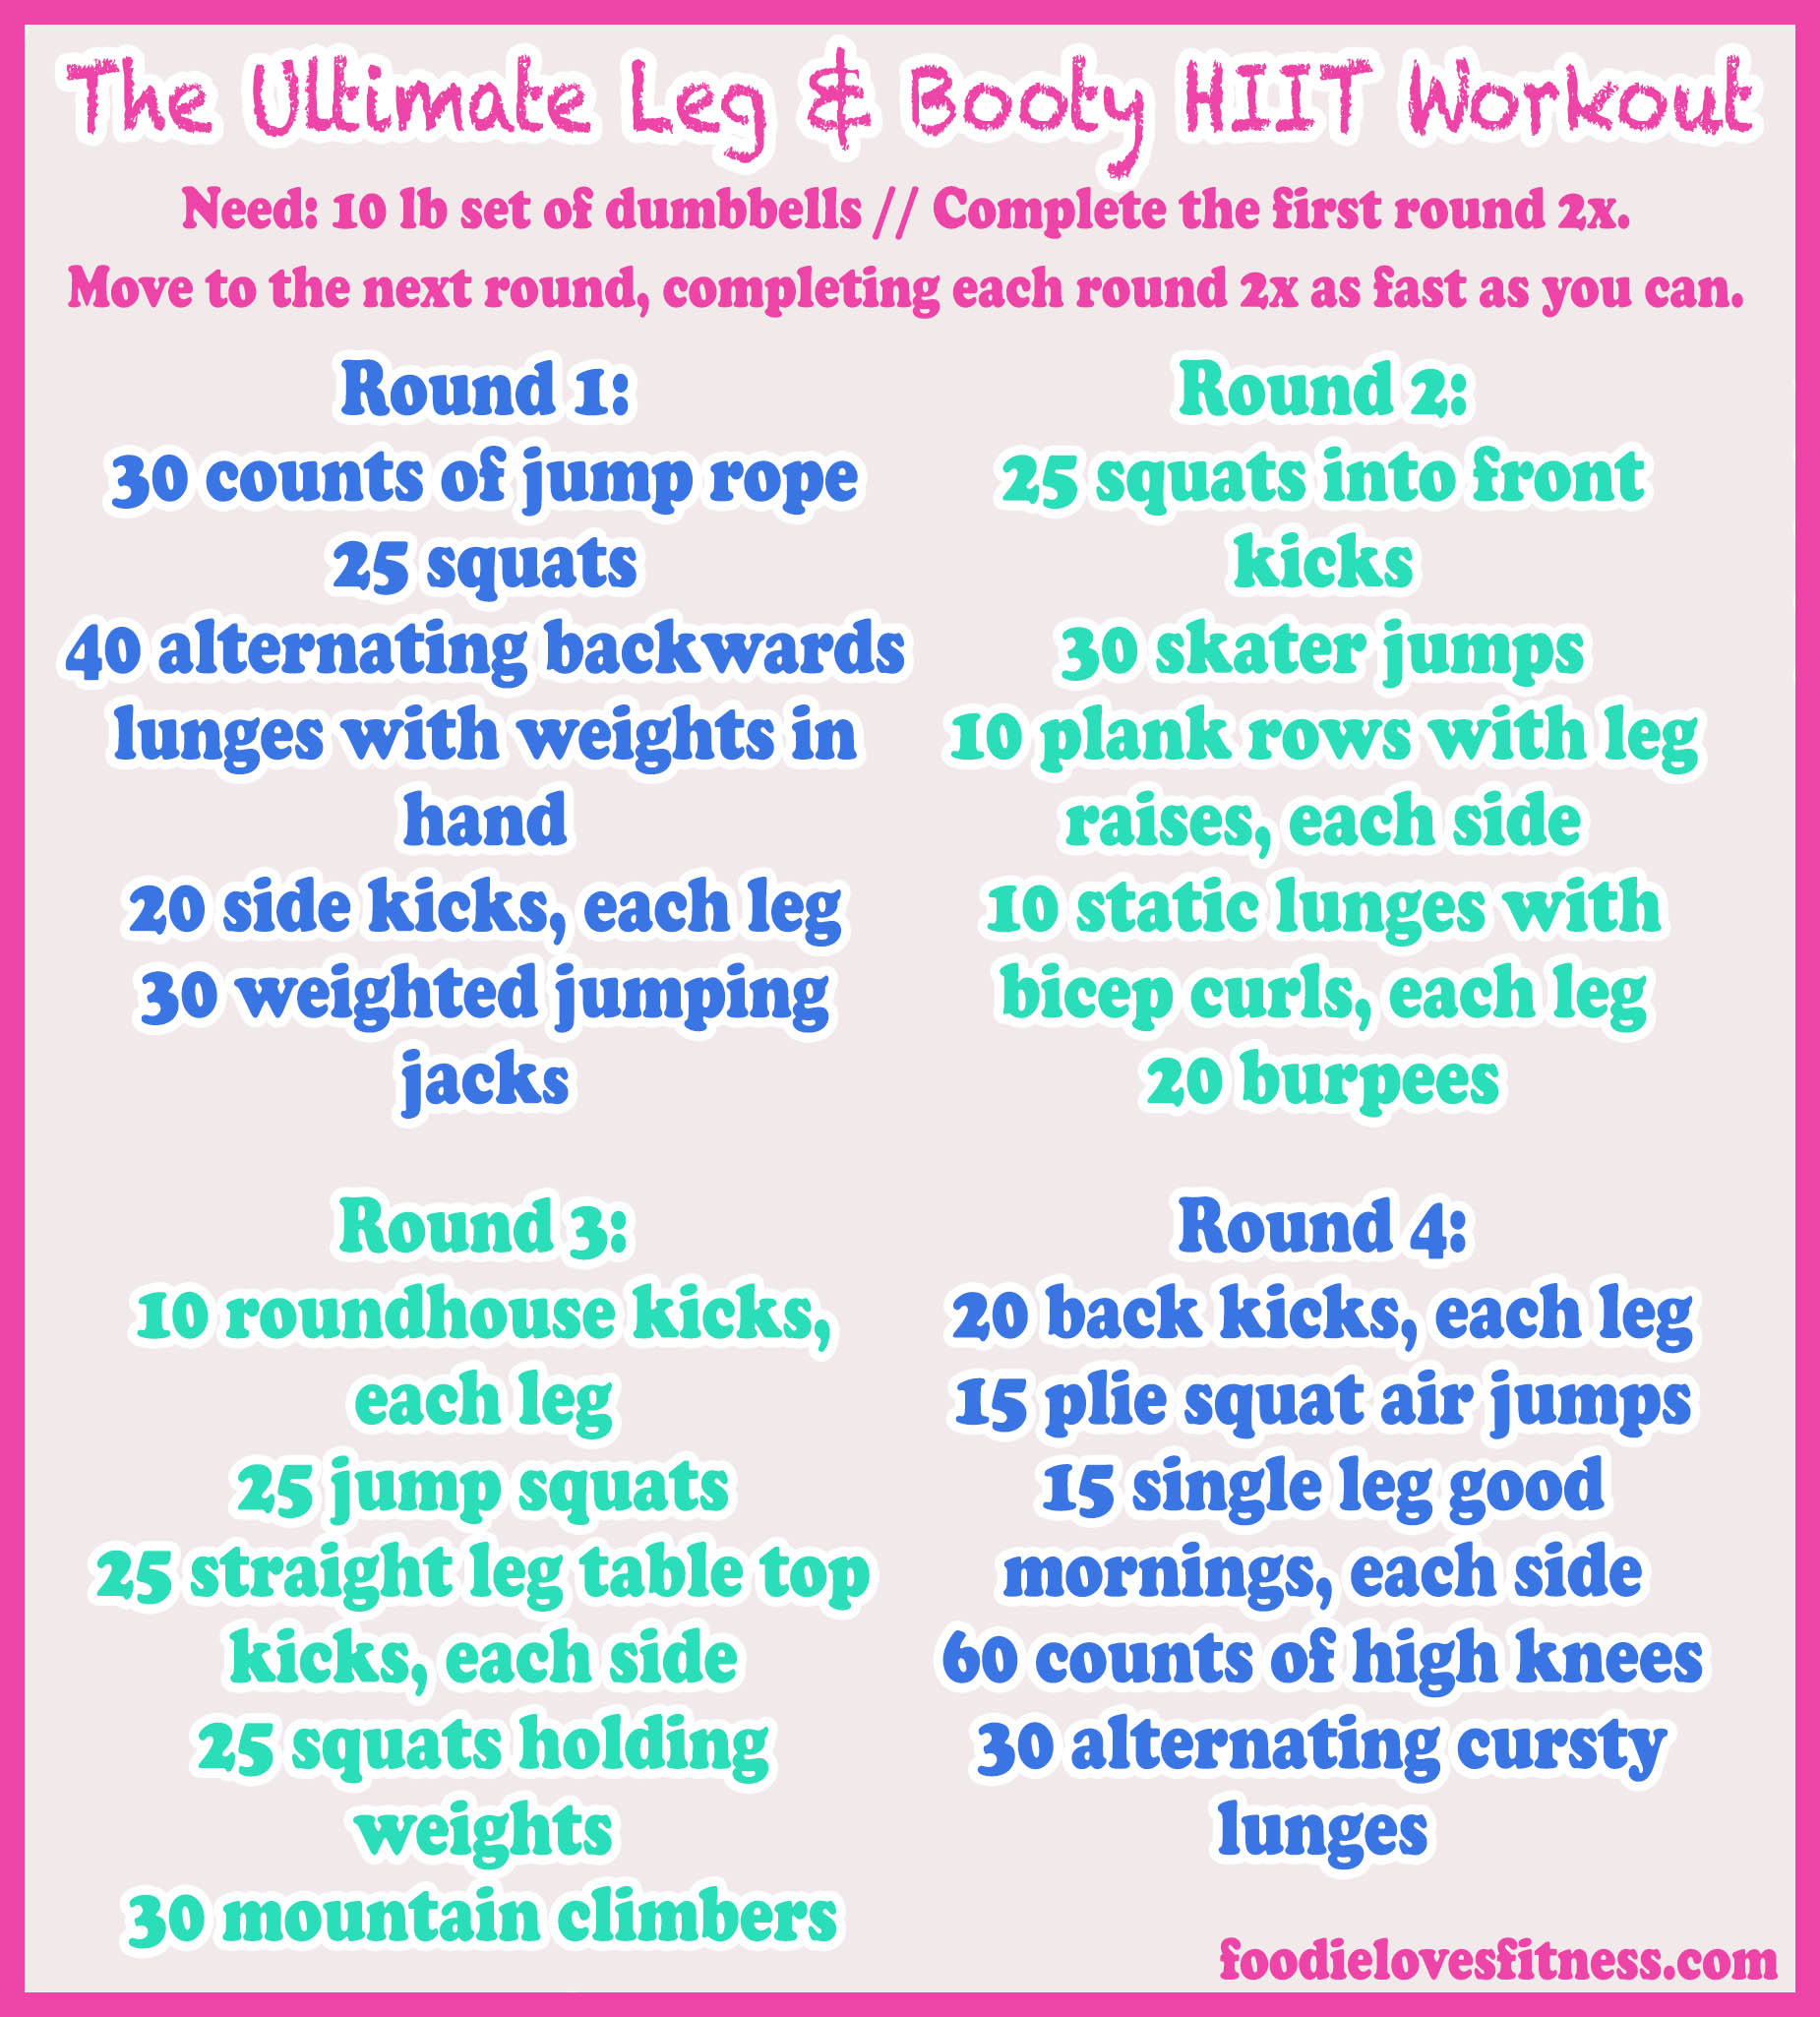 The Ultimate Leg & Booty HIIT Workout